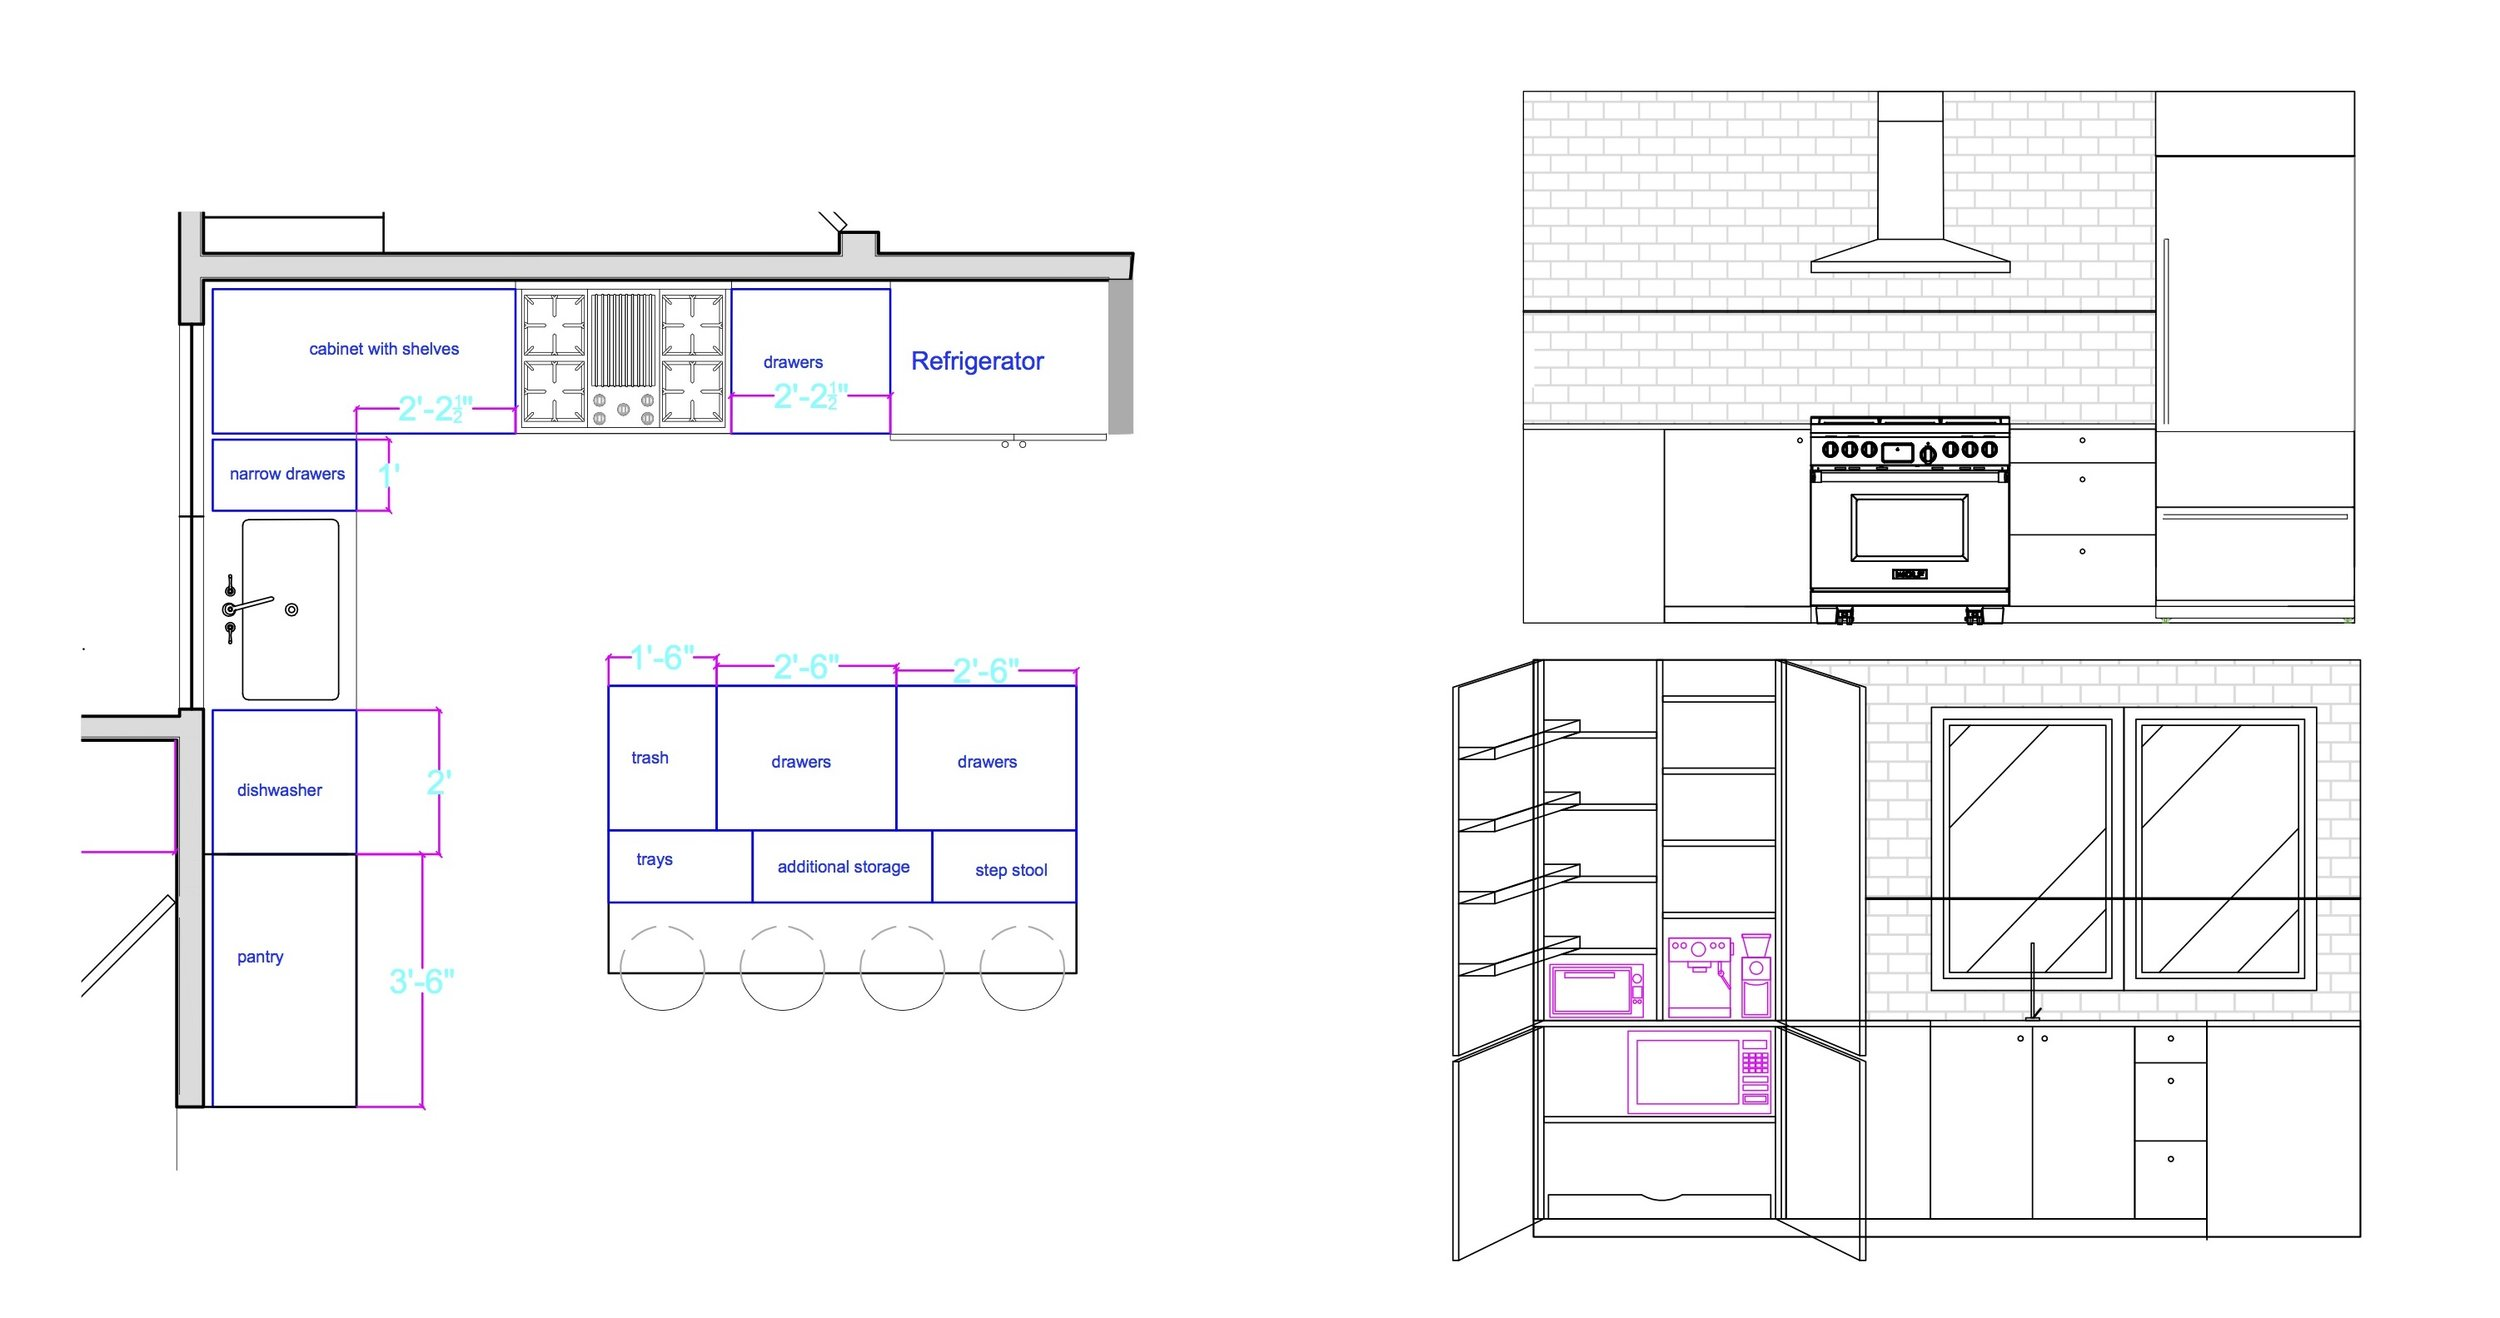 autocad drawings - kitchen layout and elevations.jpg